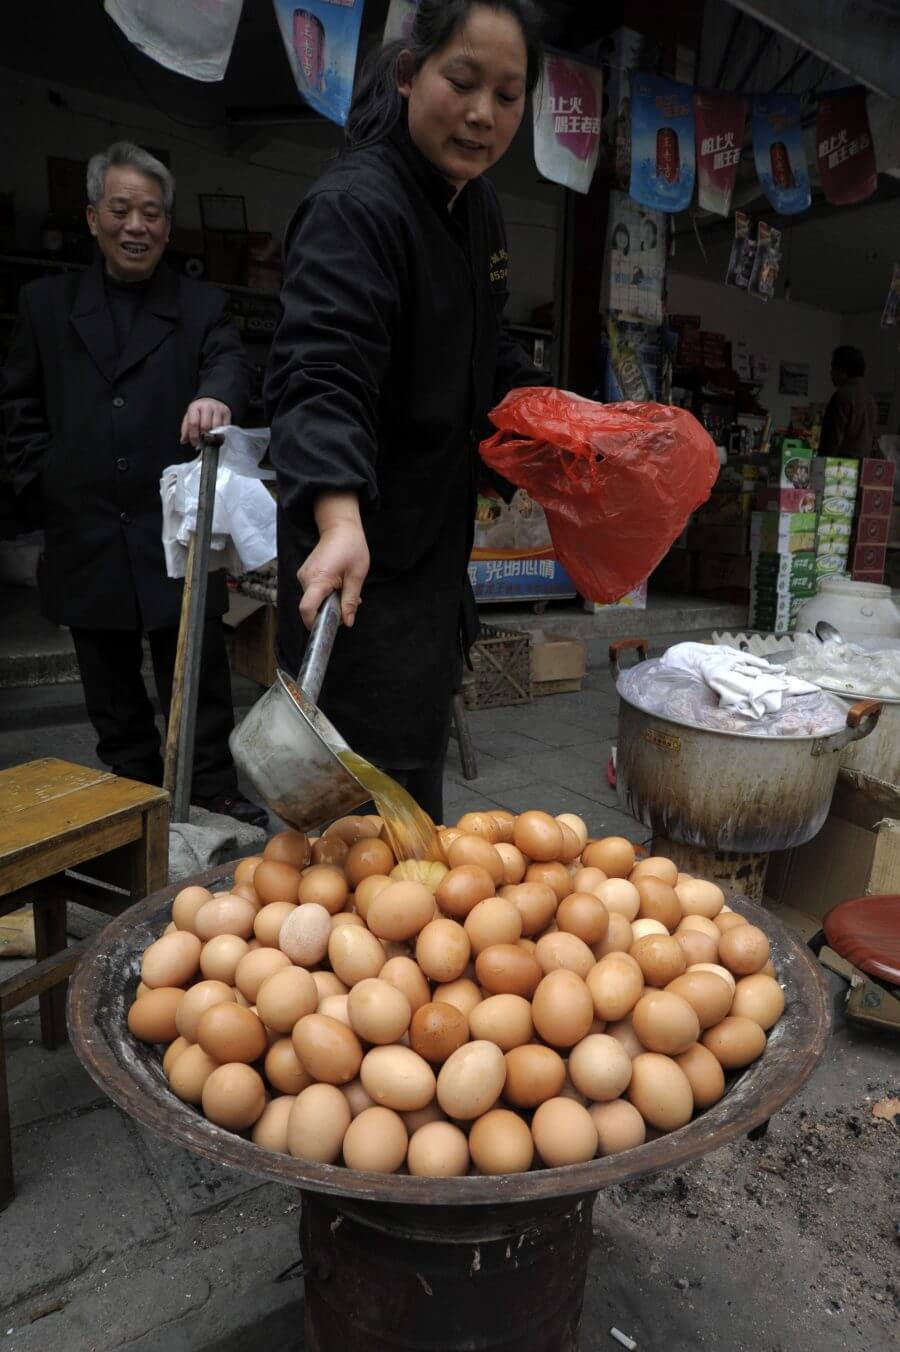 Virgin boy eggs, Dongyang, China